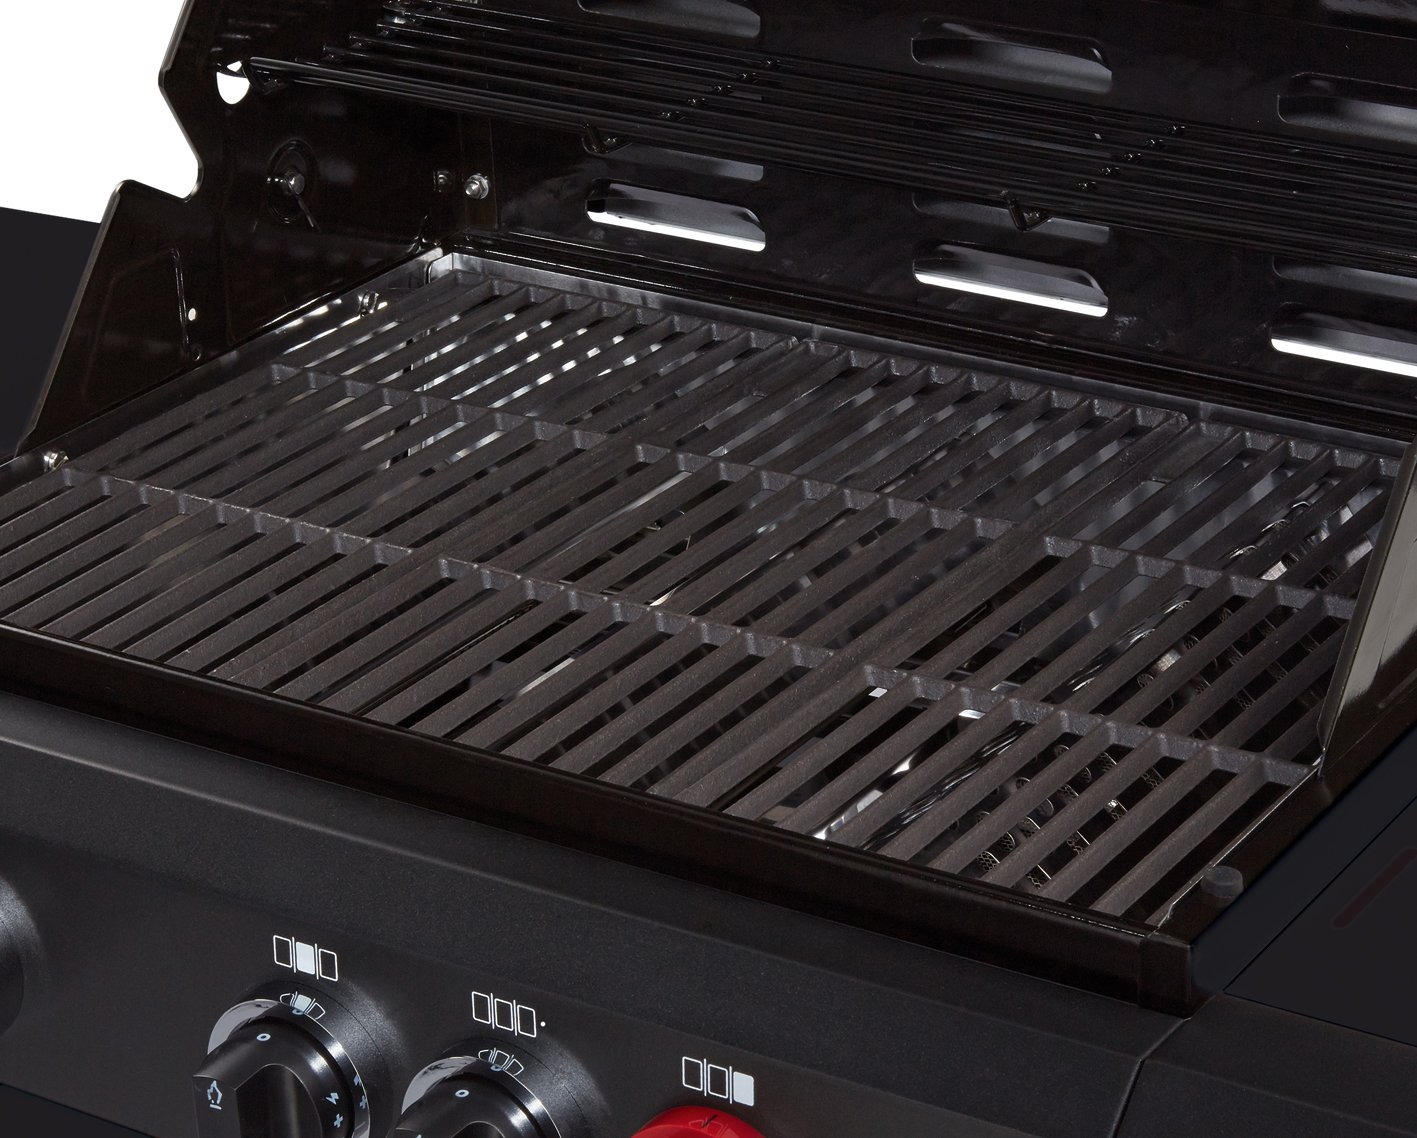 Enders Gasgrill Kansas Black Pro 3 K Turbo : Enders gasgrill kansas black 3 k turbo: amazon.de: garten